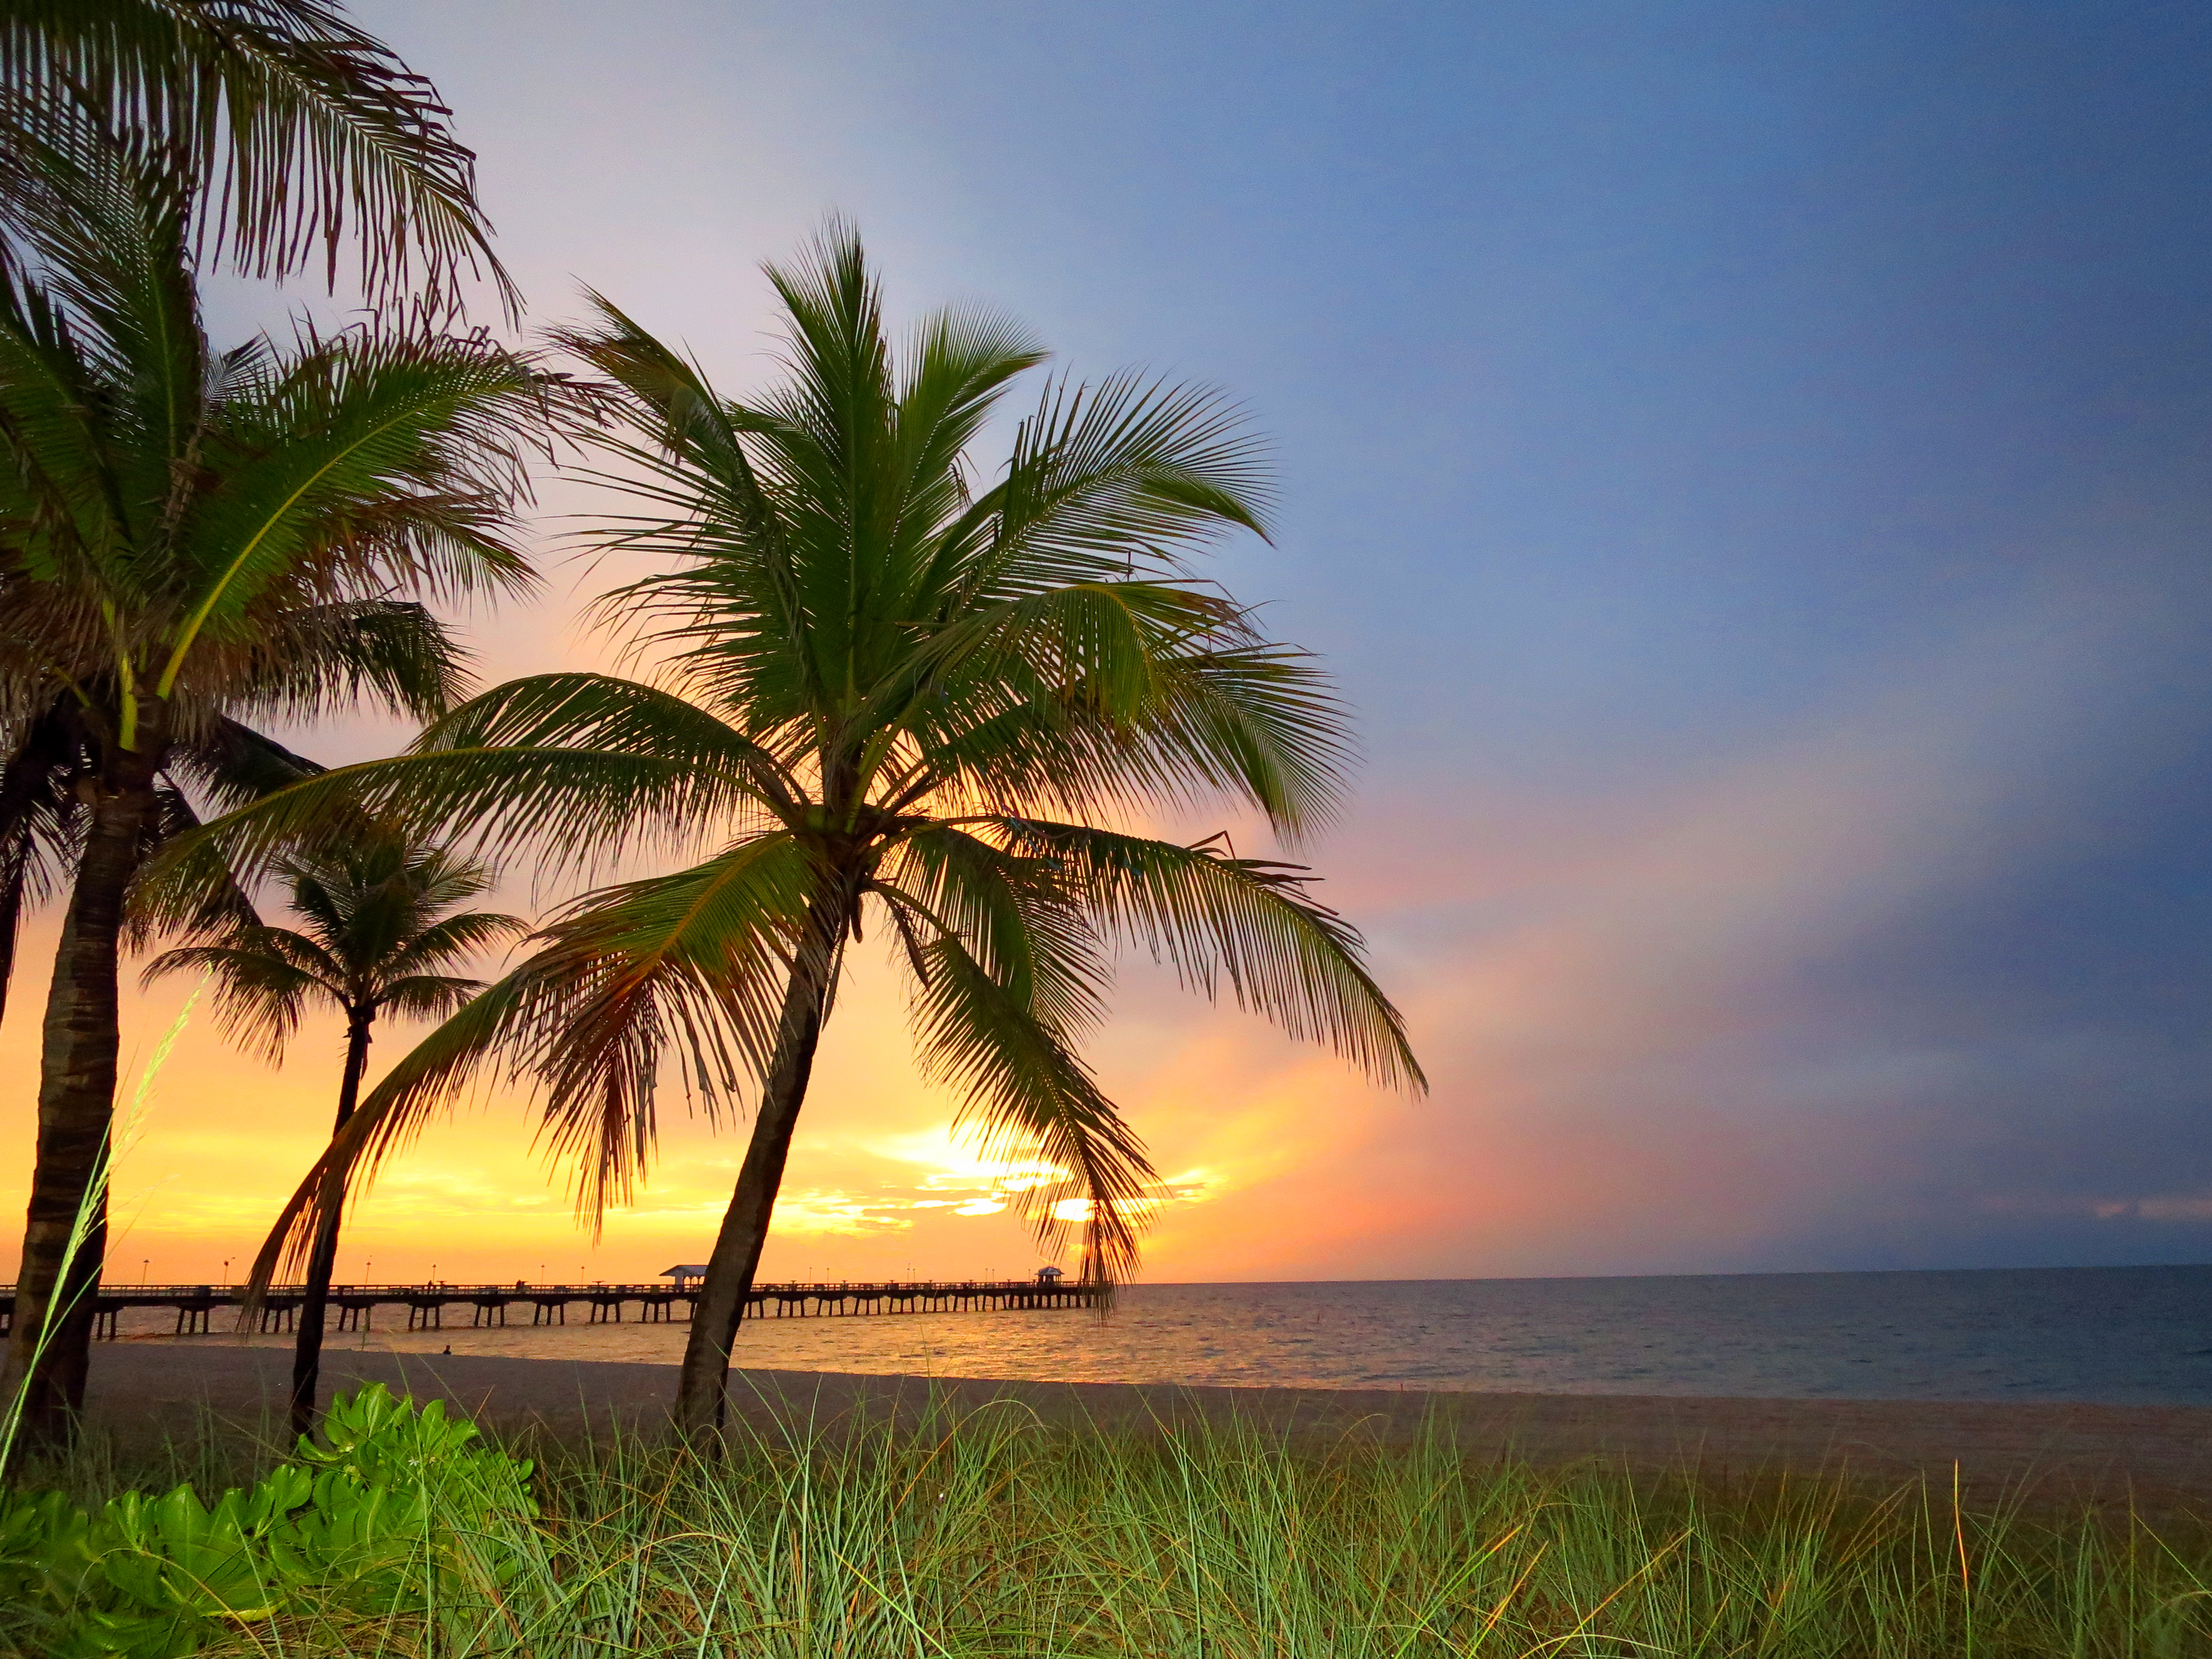 Lauderdale by the Sea at Sunrise